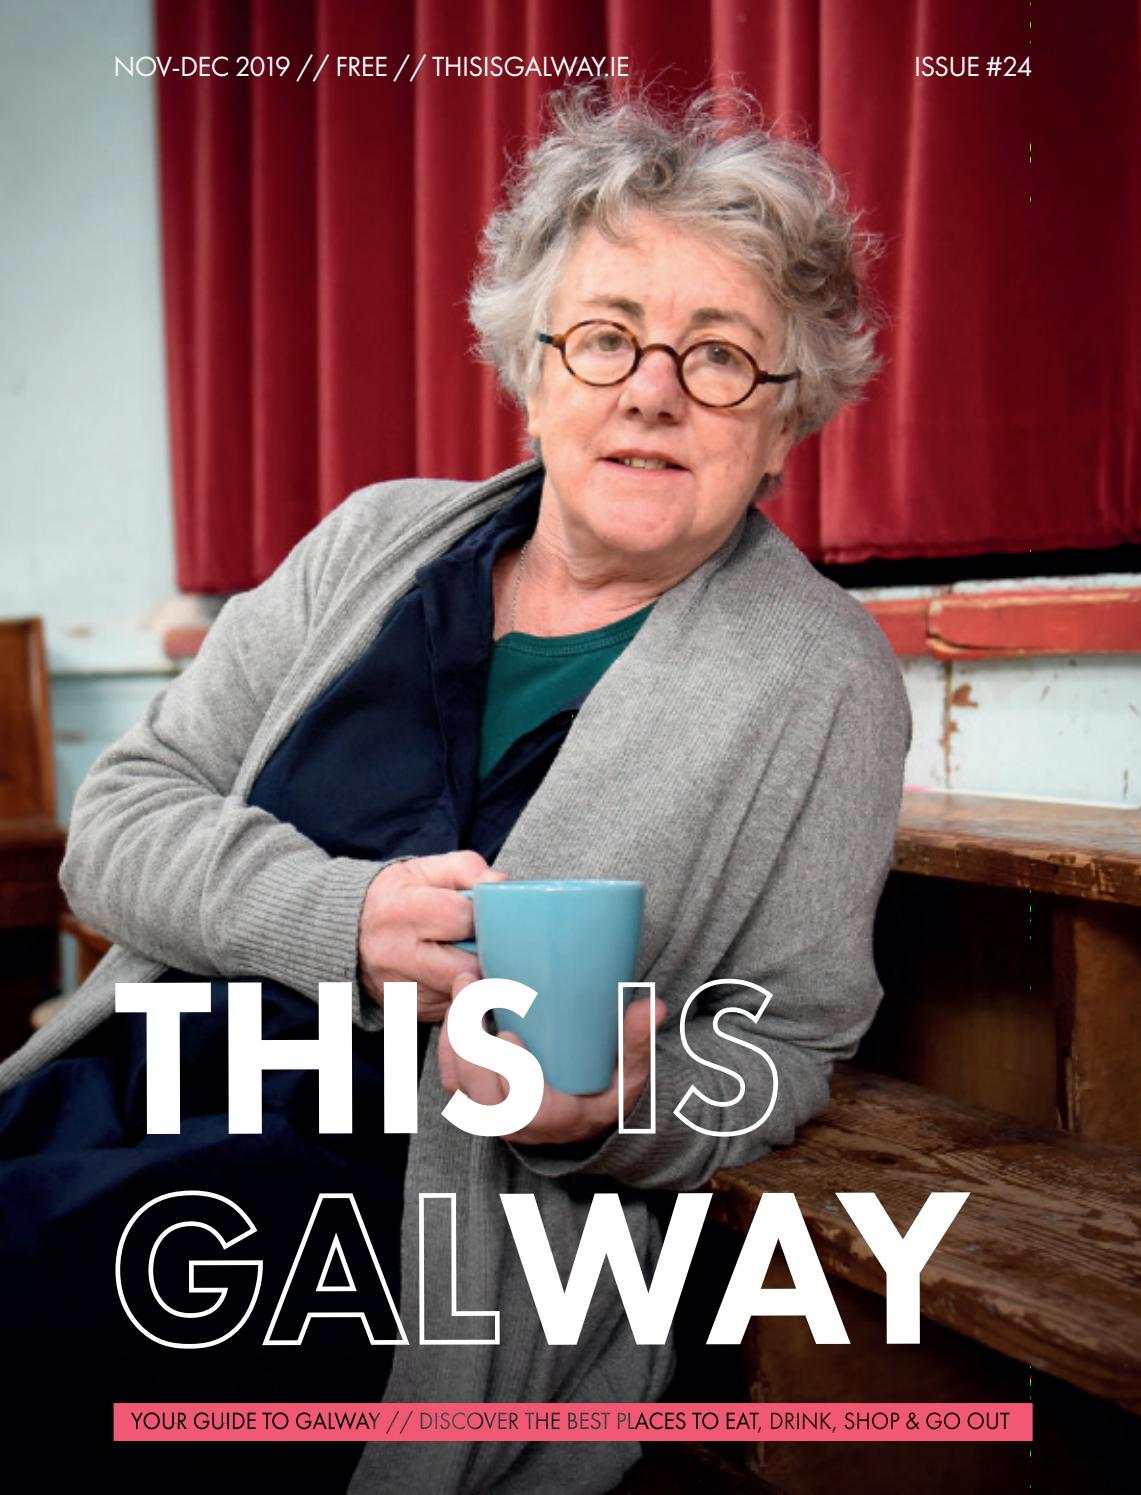 Galway Speed Dating Ages 26-38 - Travel Inspires Experiences